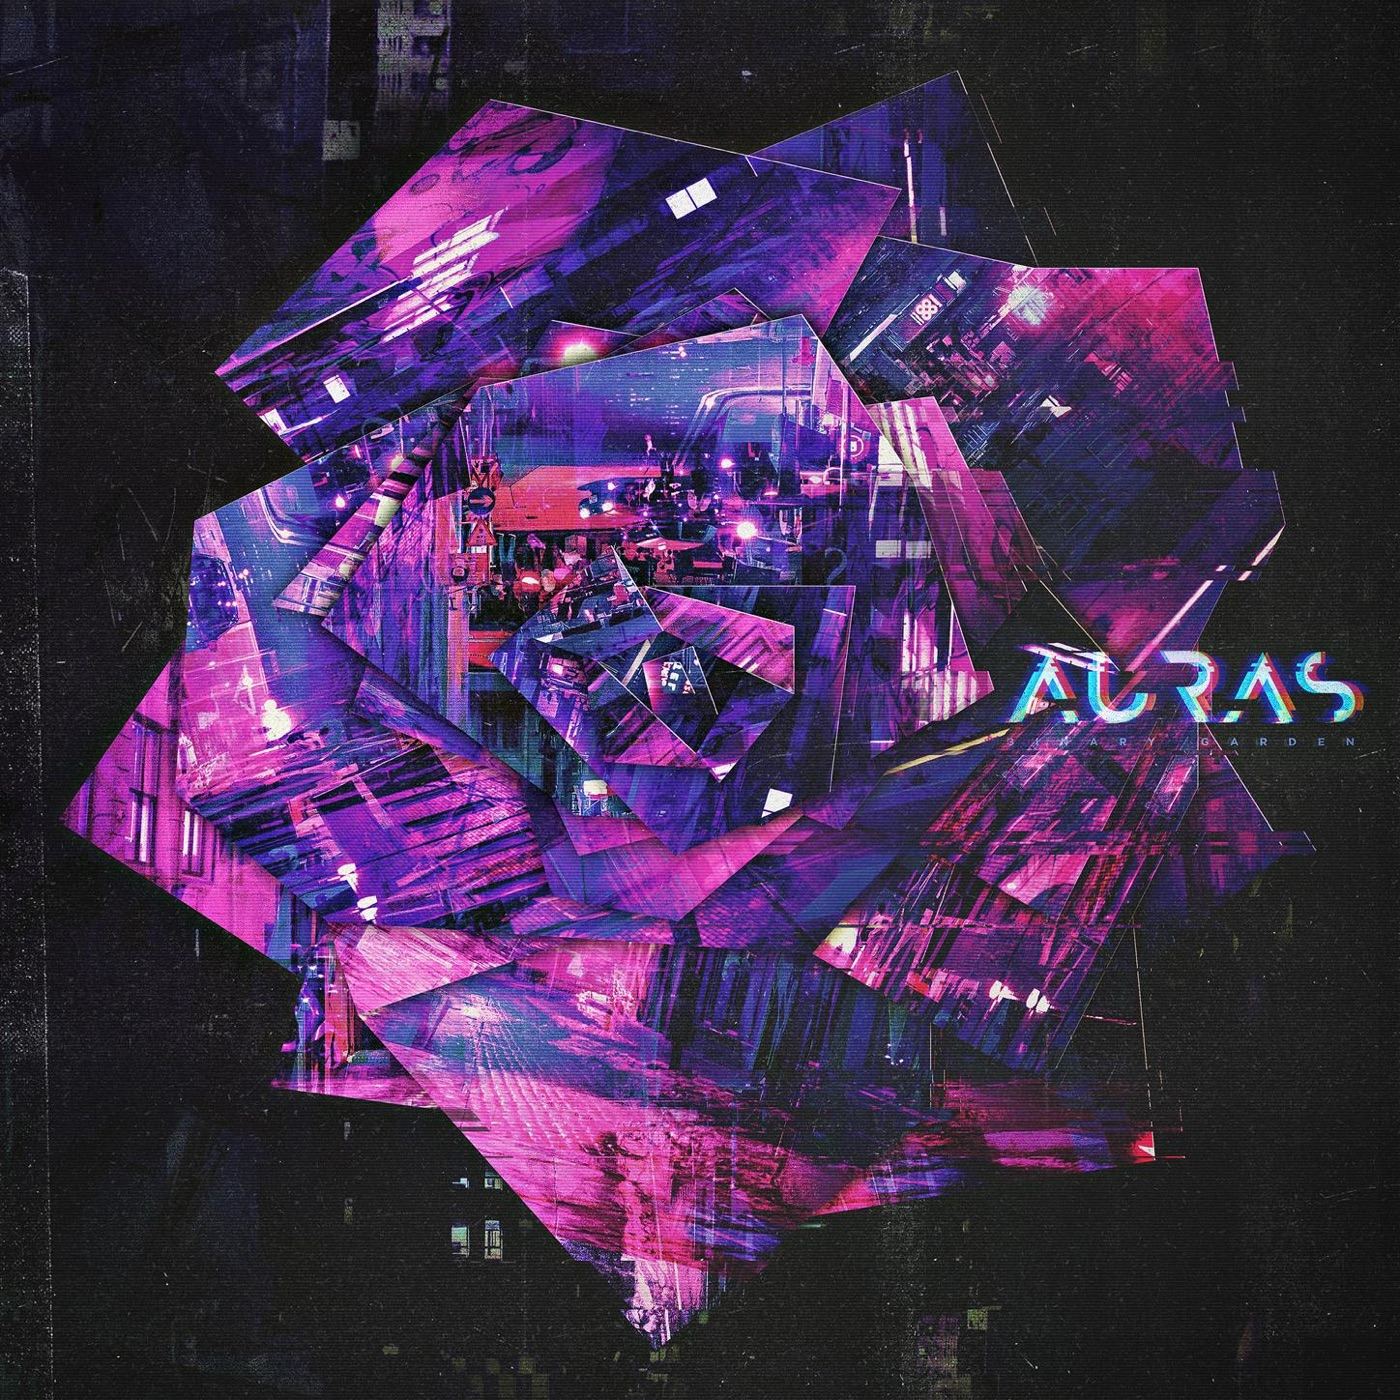 AURAS - Binary Garden (2019)